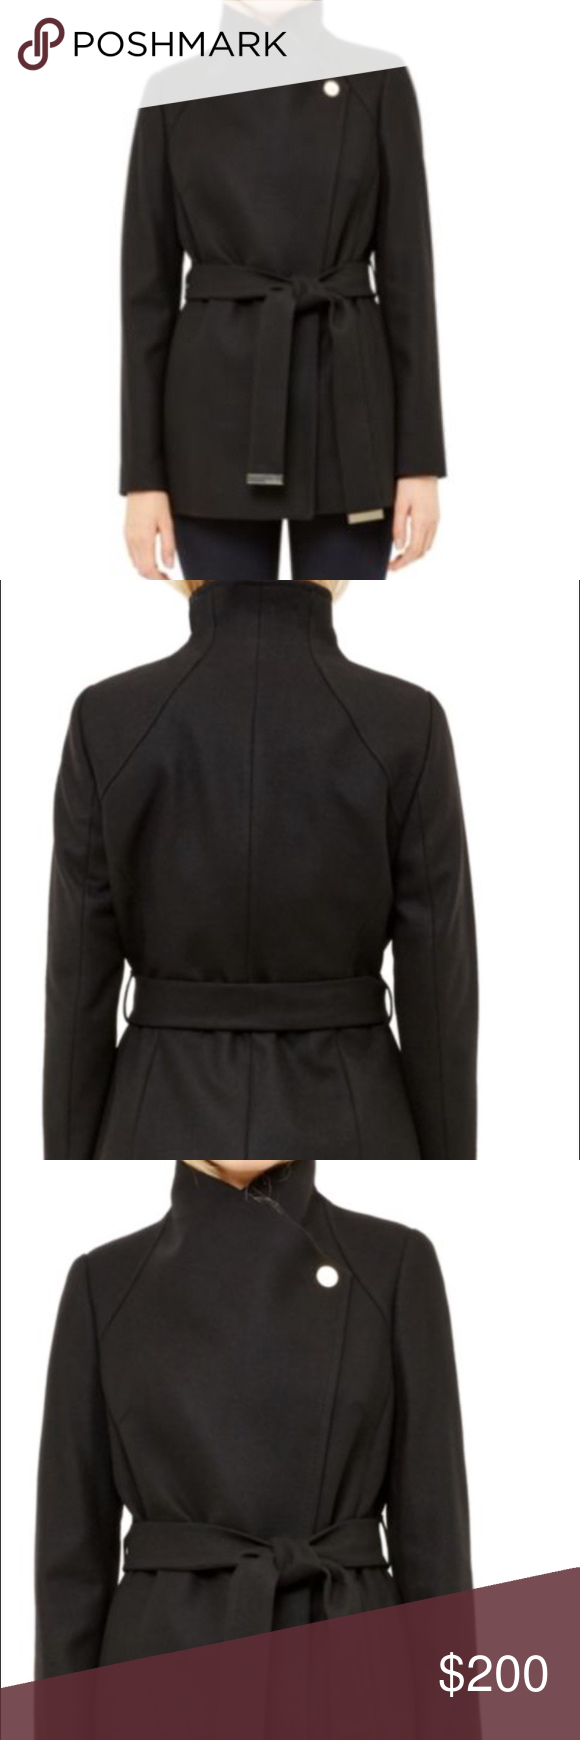 725ecb20b7ecb6 Ted Baker Elethea Short Belted Coat Flattering wrap-around coat with belted  waist